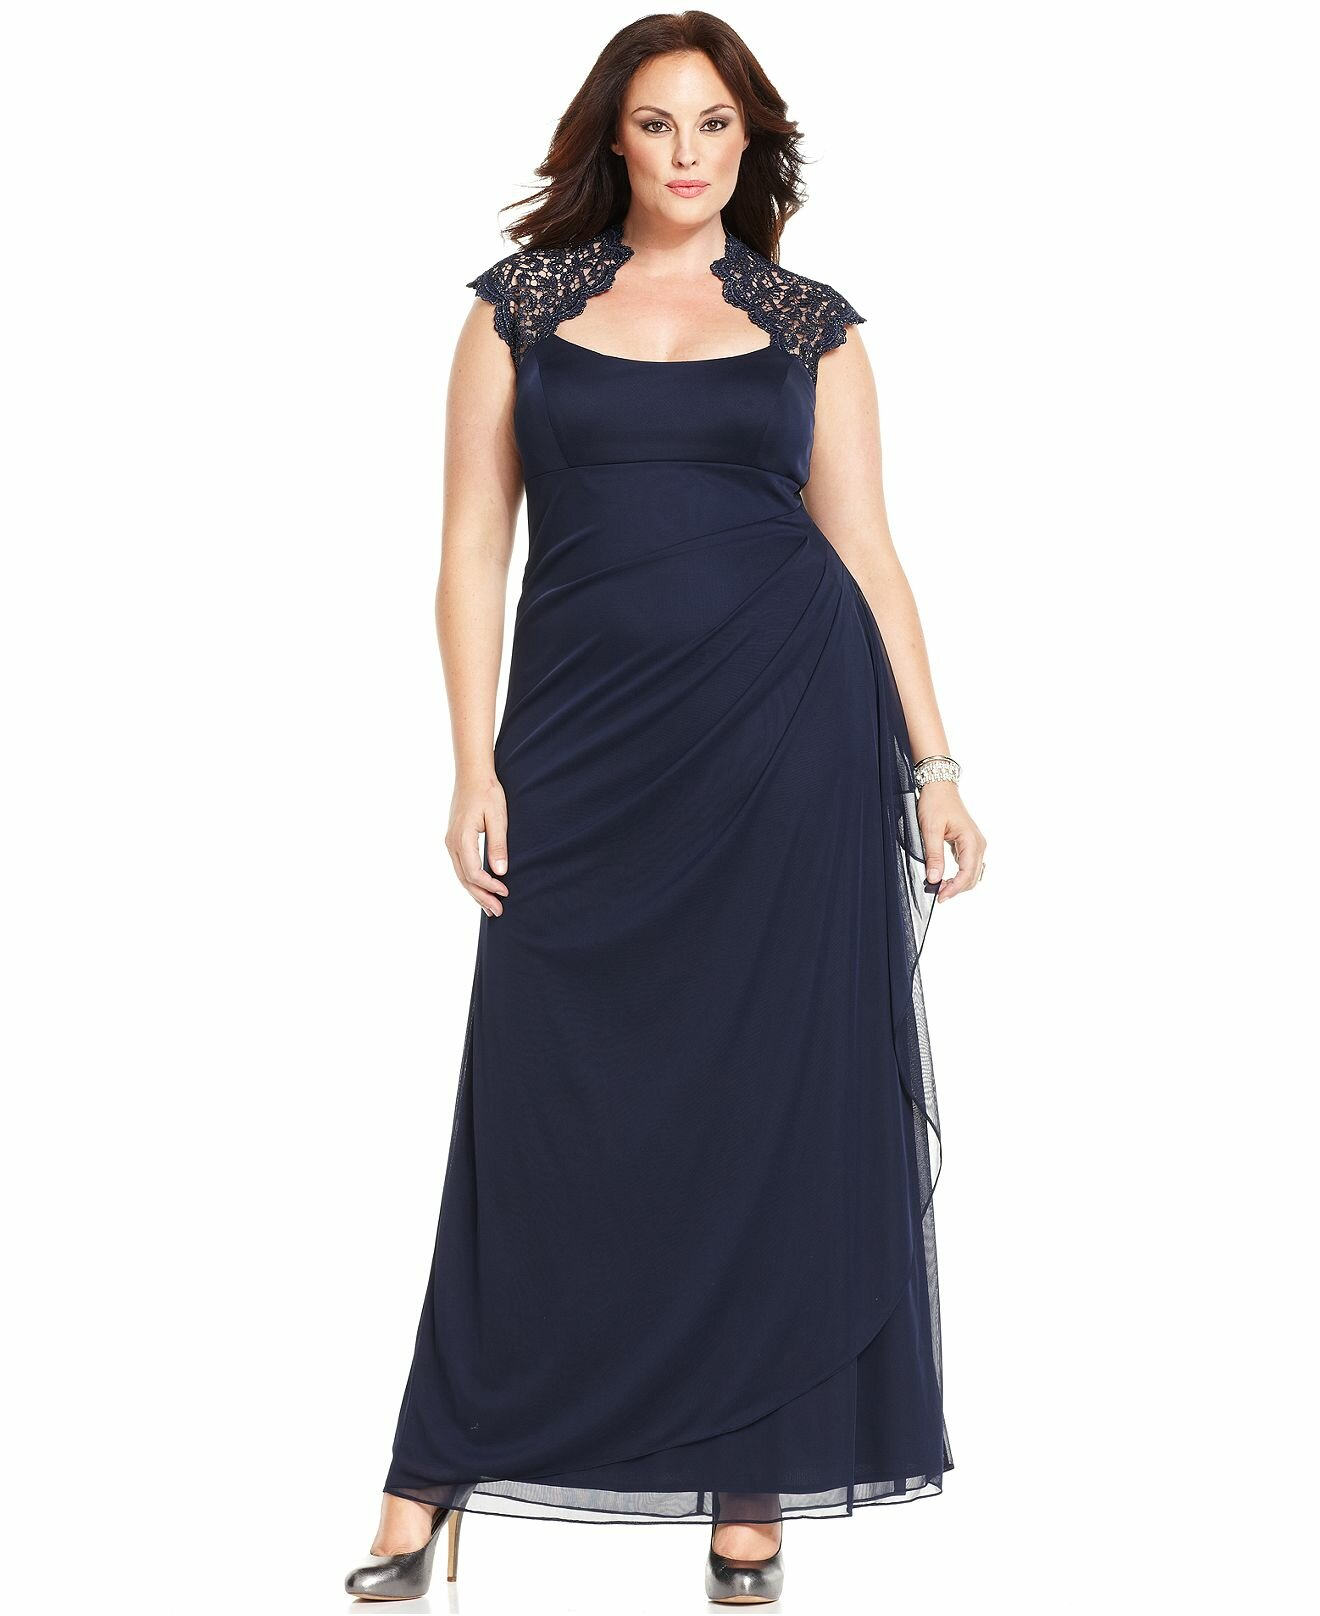 macys wedding dresses plus size pictures ideas guide to